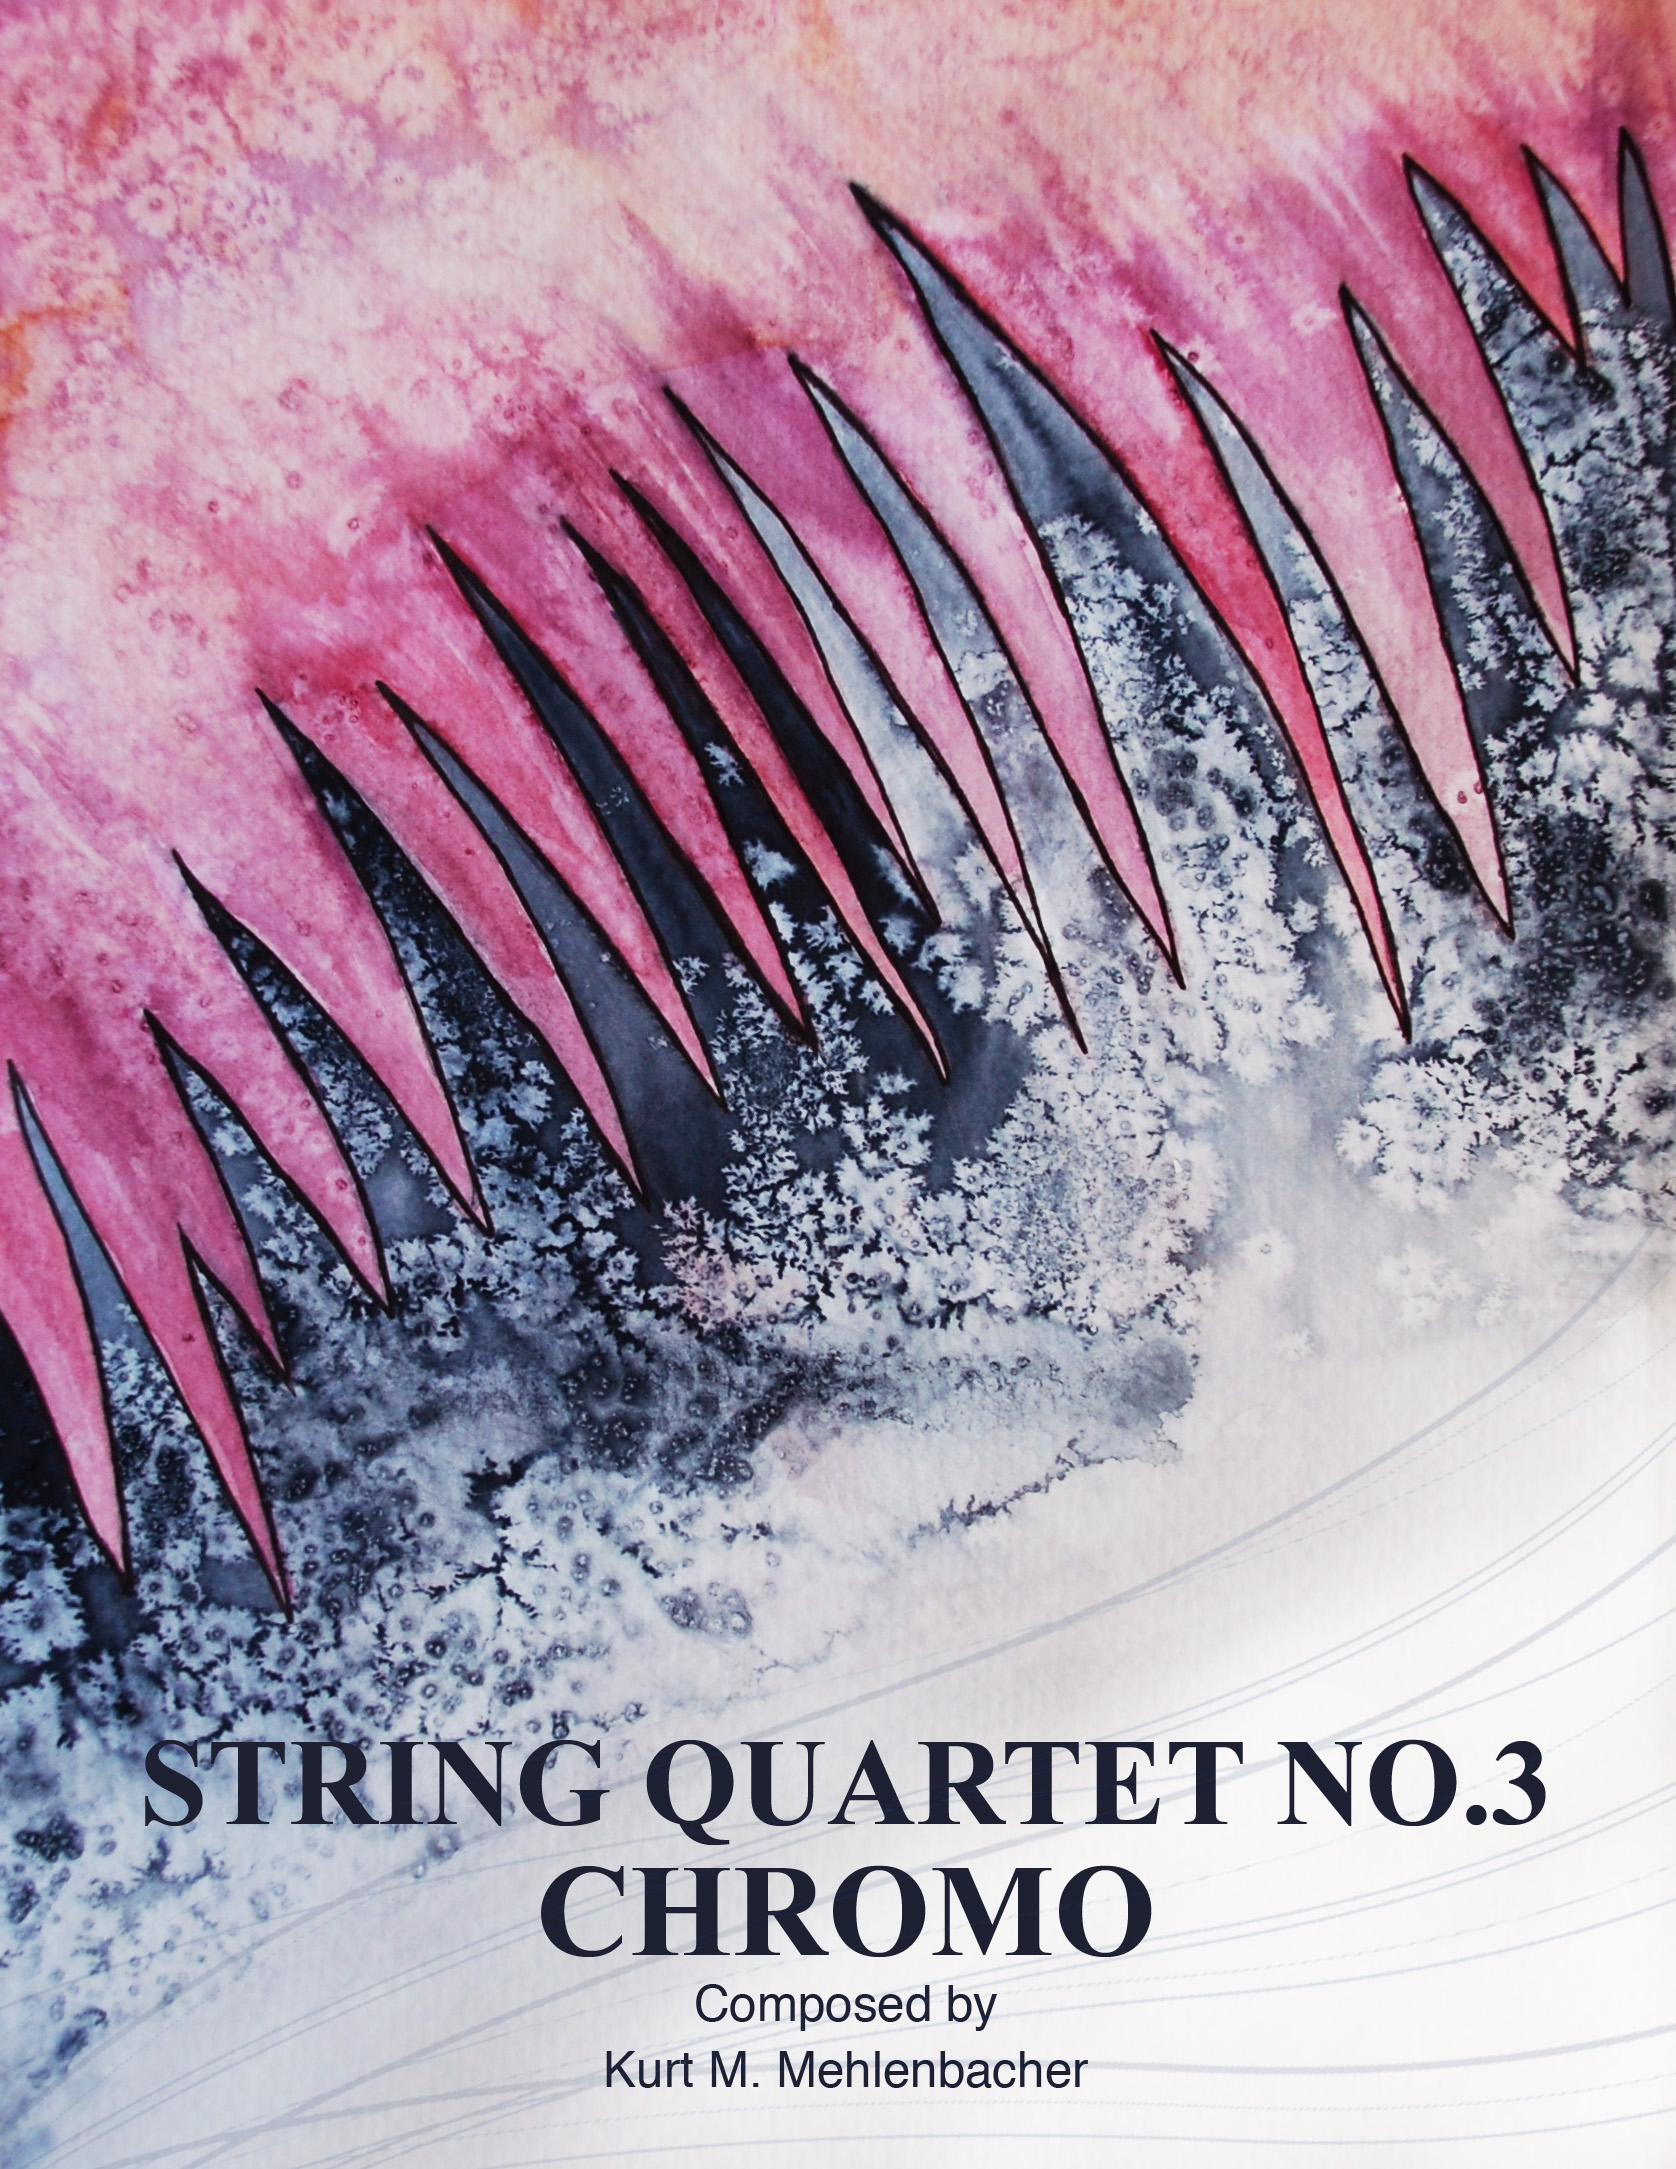 String Quartet No. 3: Chromo    for string quartet (2 violins, viola, cello)